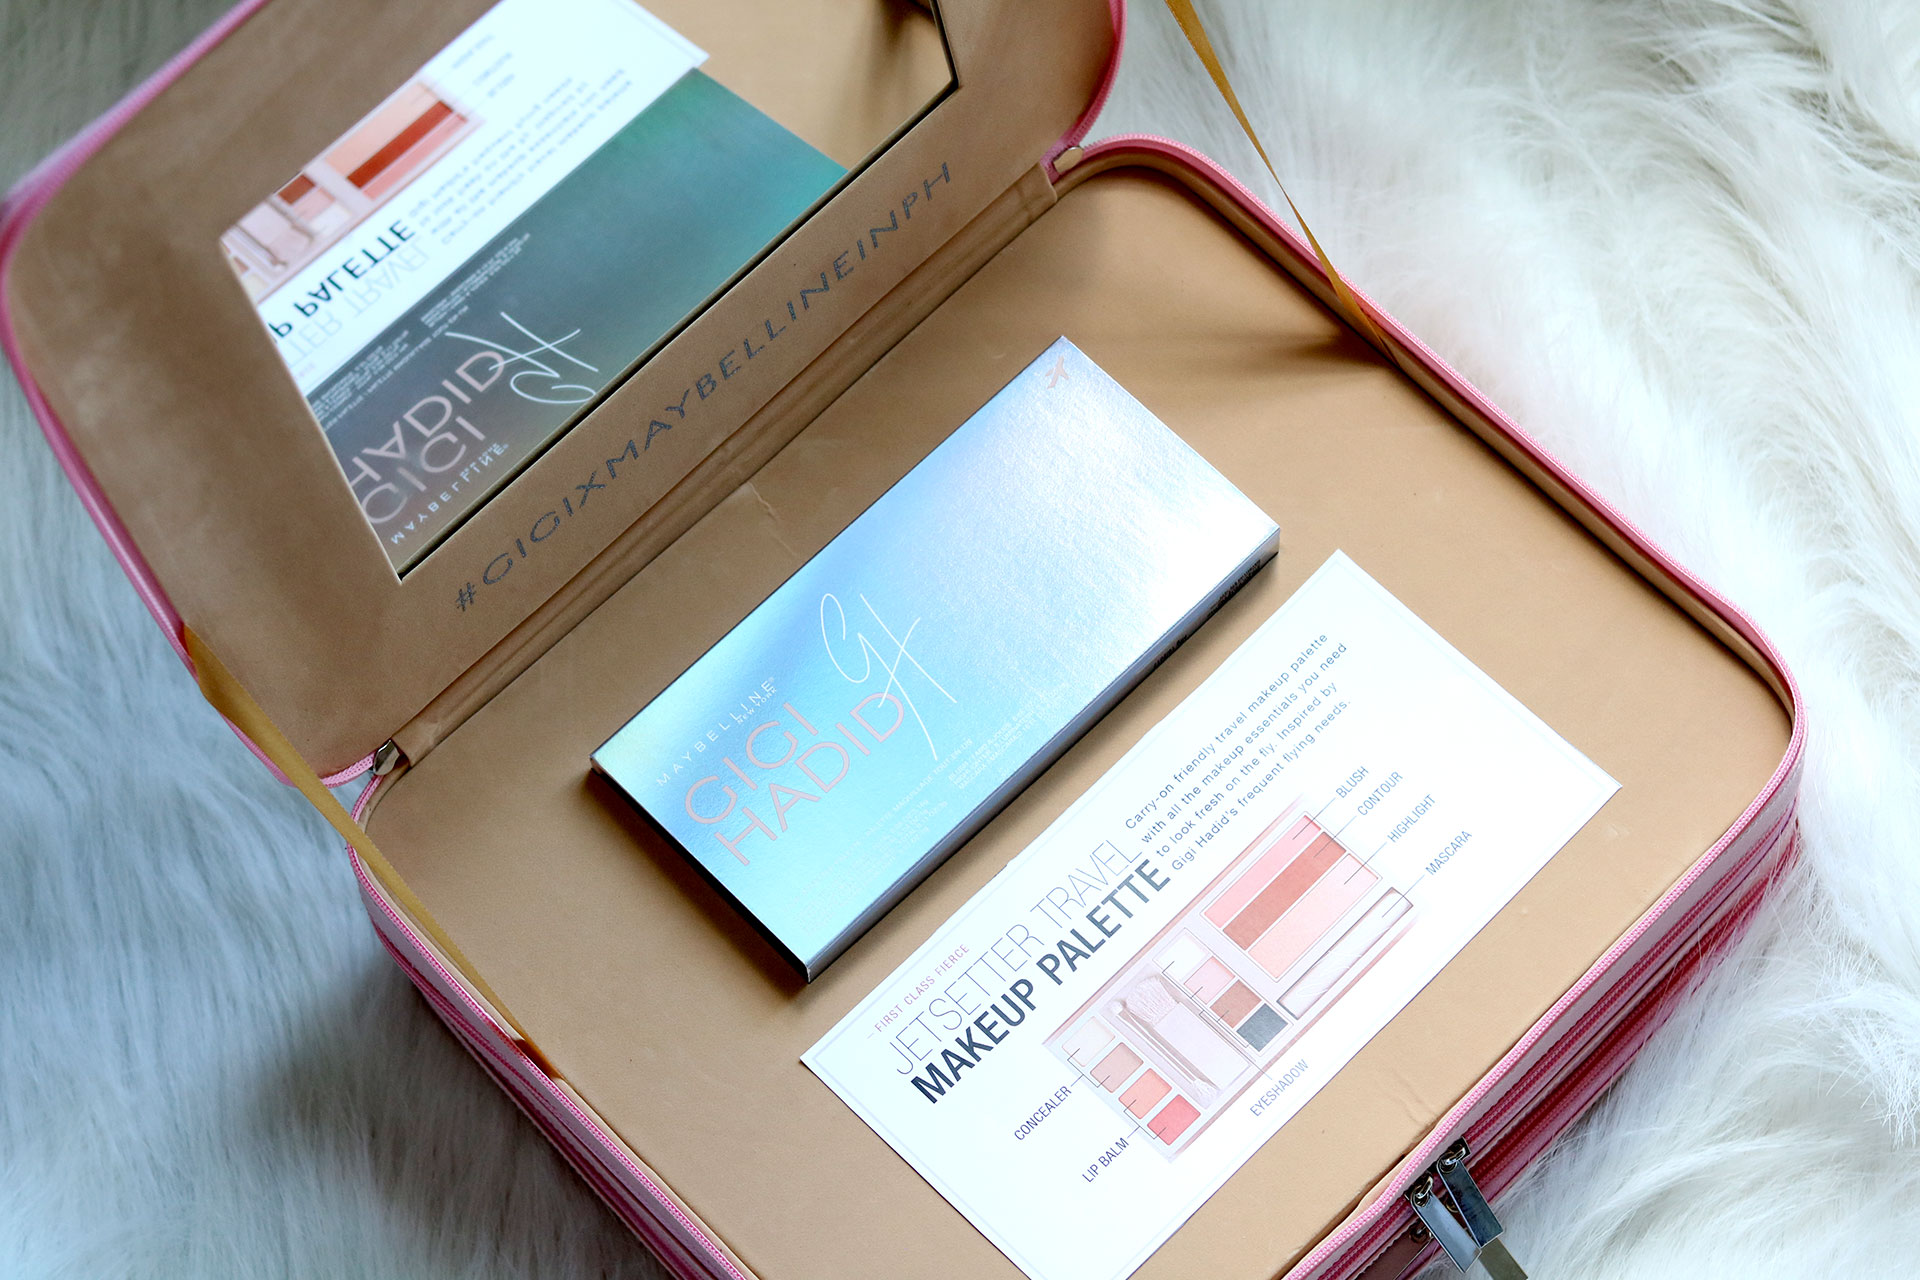 2 Gigi Hadid Maybelline Collection Review Swatches Photos - Gen-zel She Sings Beauty